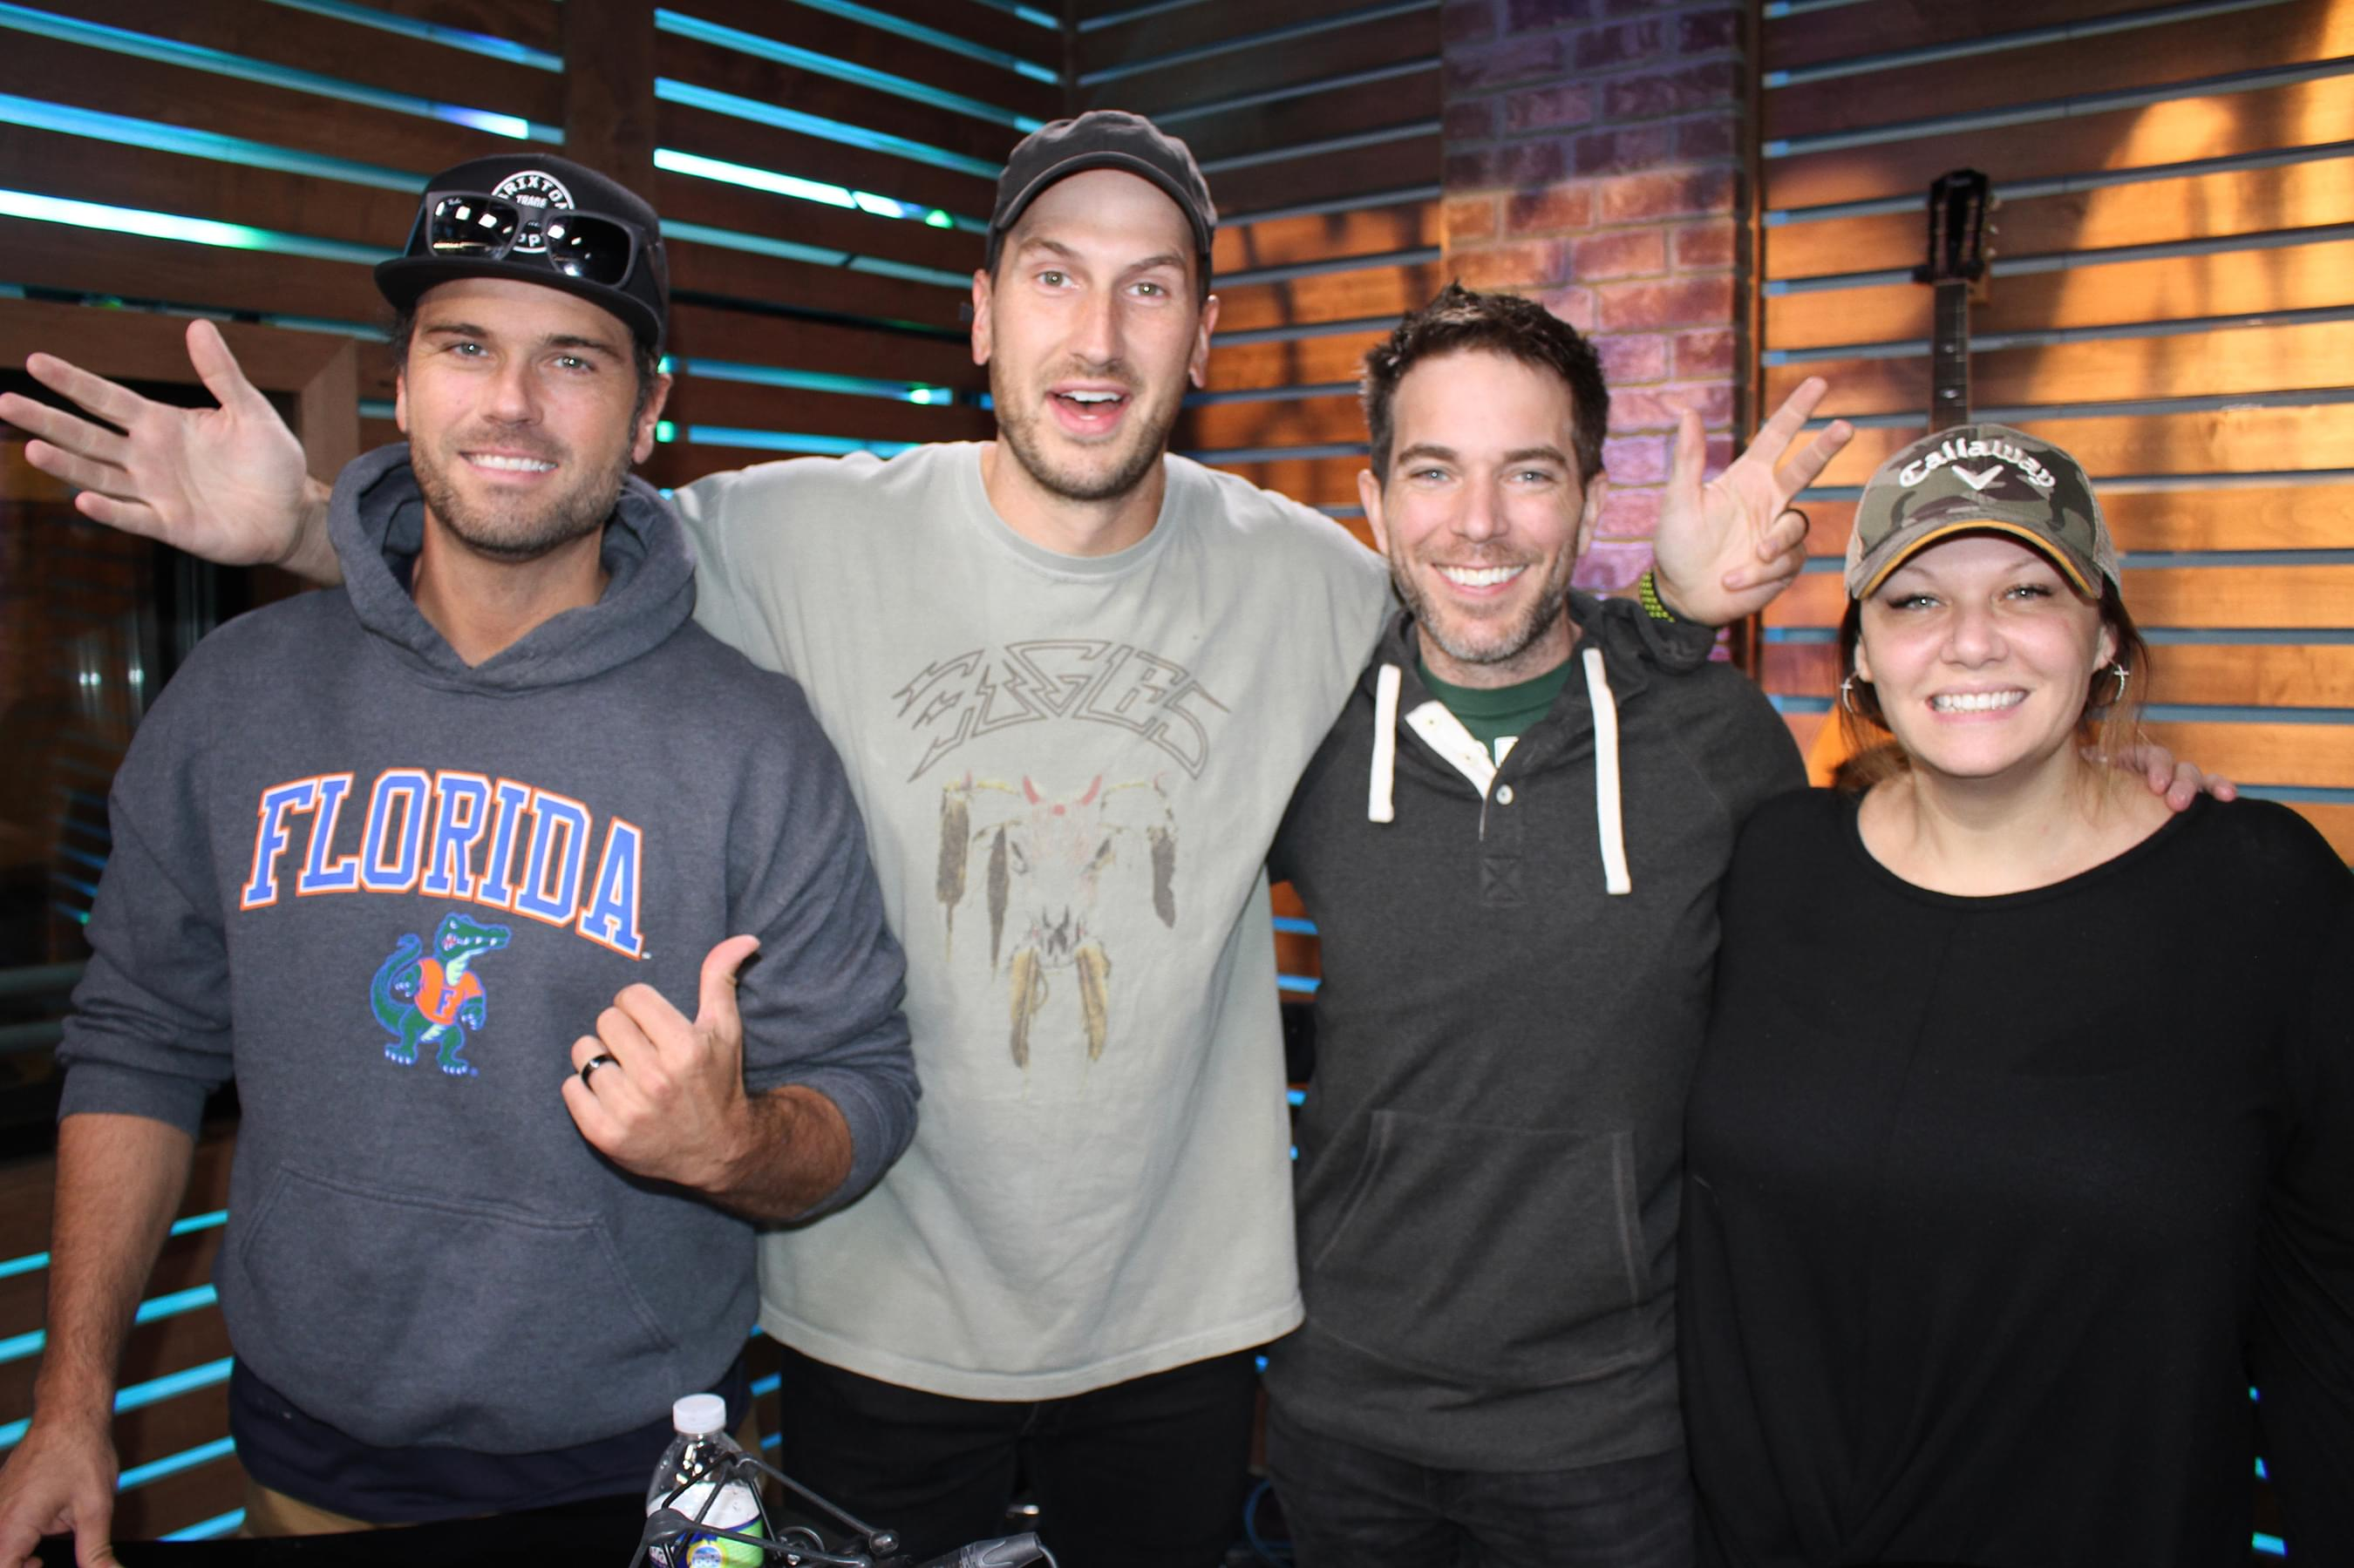 Russell Dickerson Reveals What He, Thomas Rhett, and Tyler Hubbard Are Planning for This Year's Christmas Caroling, #HealthyHalloween Thoughts, & MORE